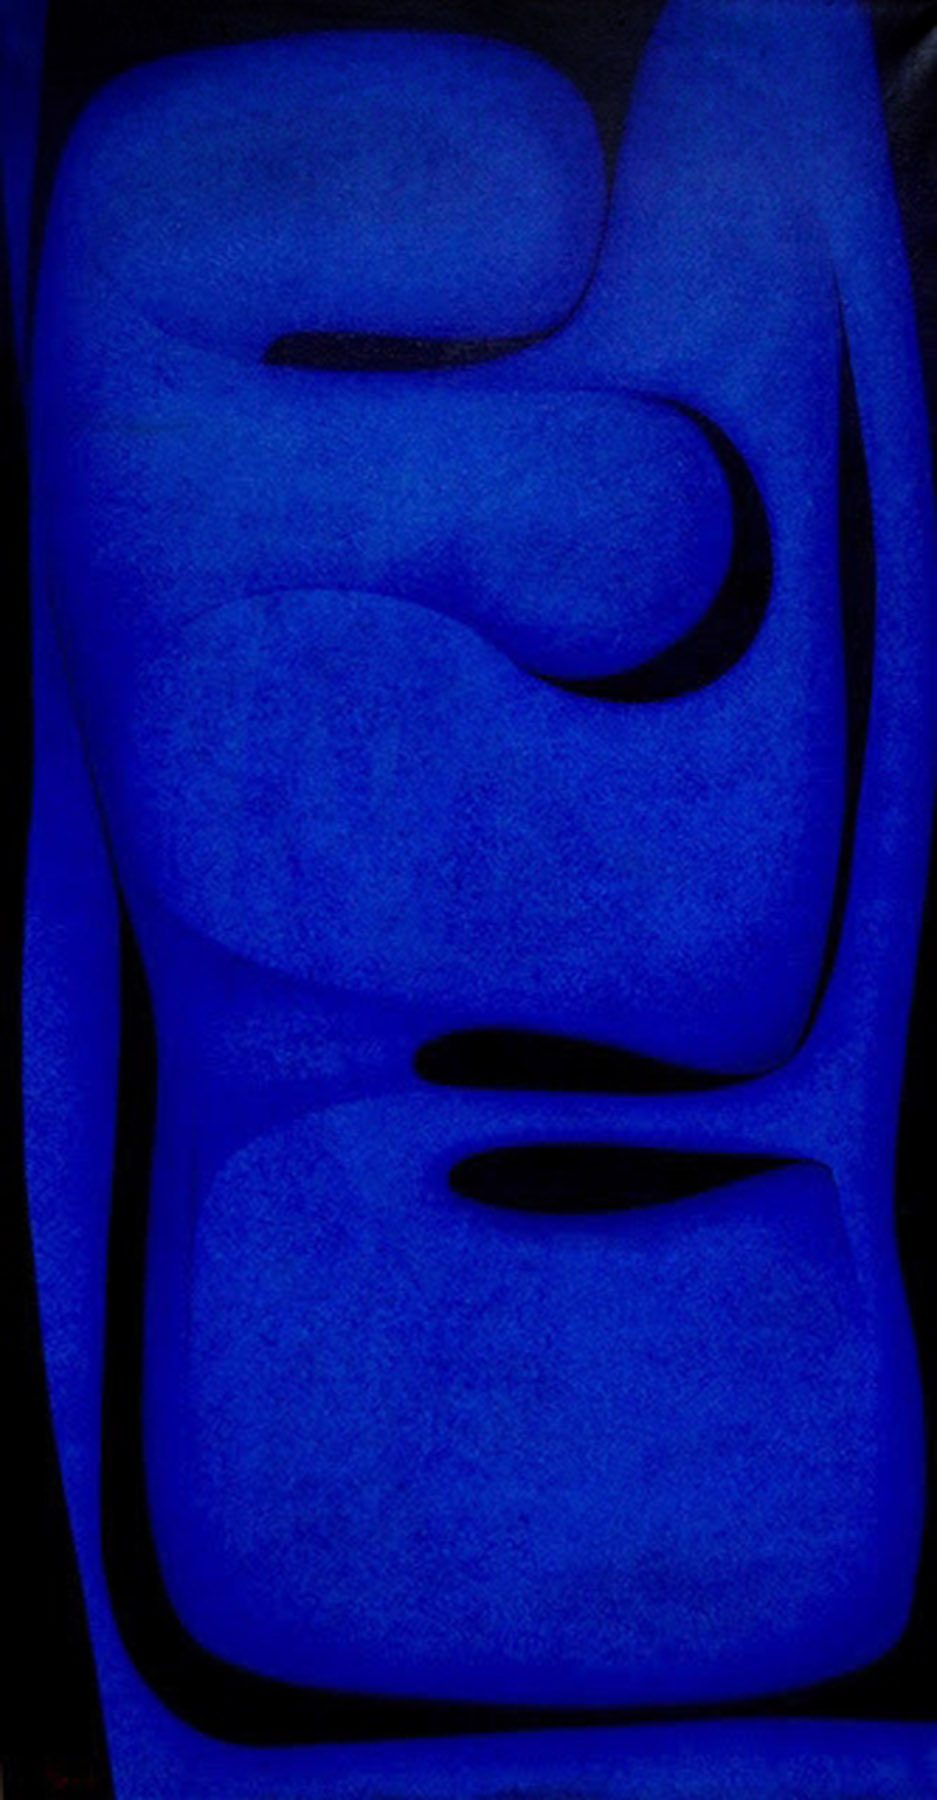 Seymour Fogel - Transcendental Form in Blue.jpg